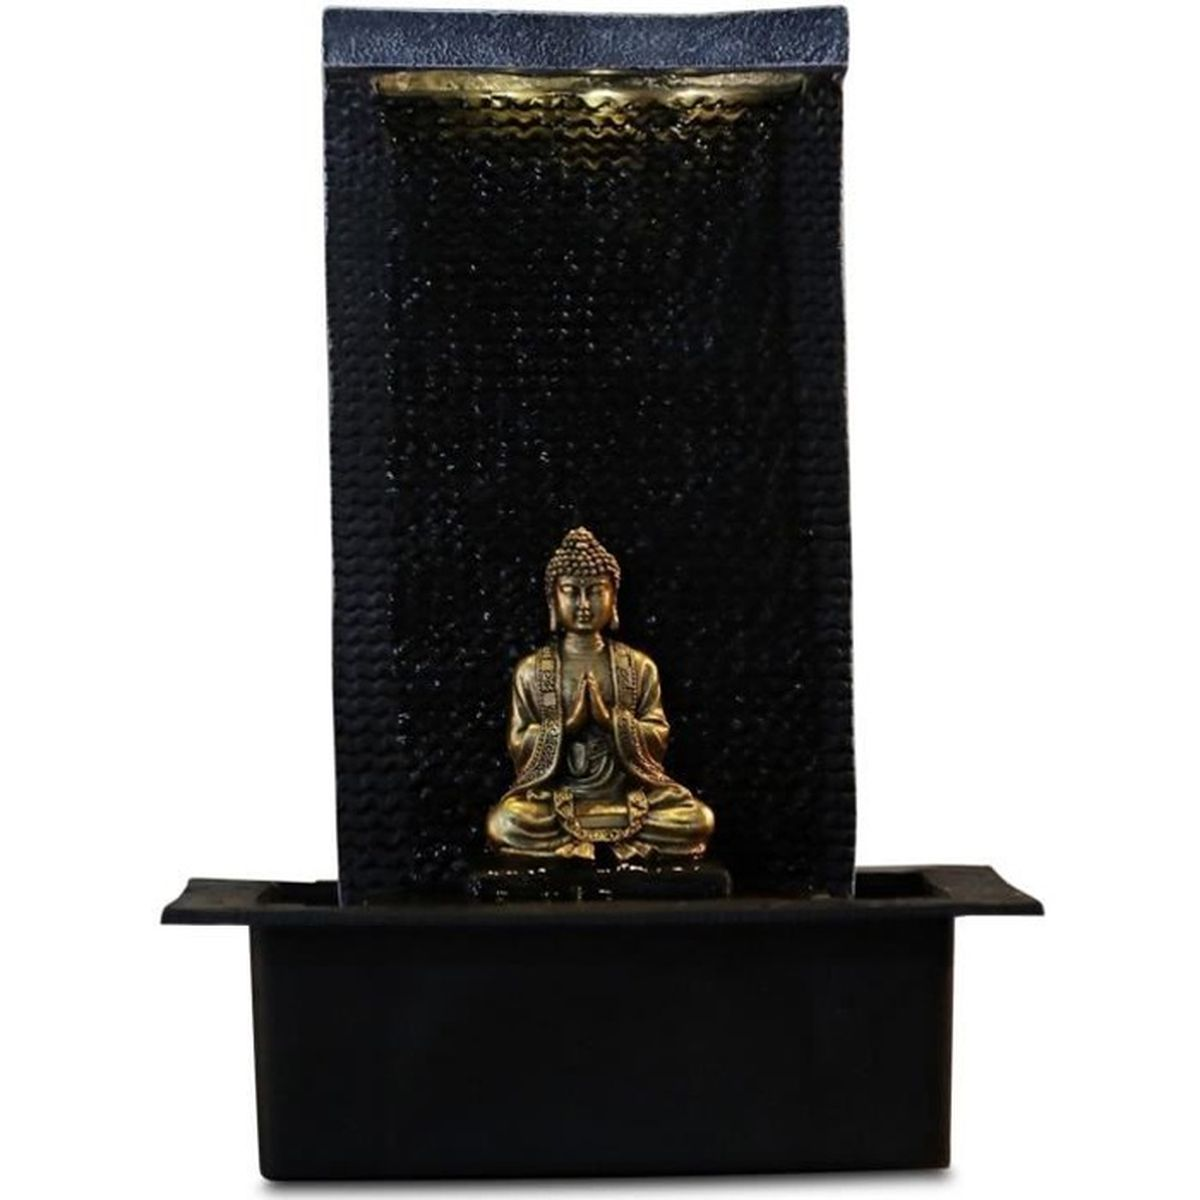 fontaine mur d 39 eau bouddha zenitude multicolore achat vente fontaine int rieure cdiscount. Black Bedroom Furniture Sets. Home Design Ideas